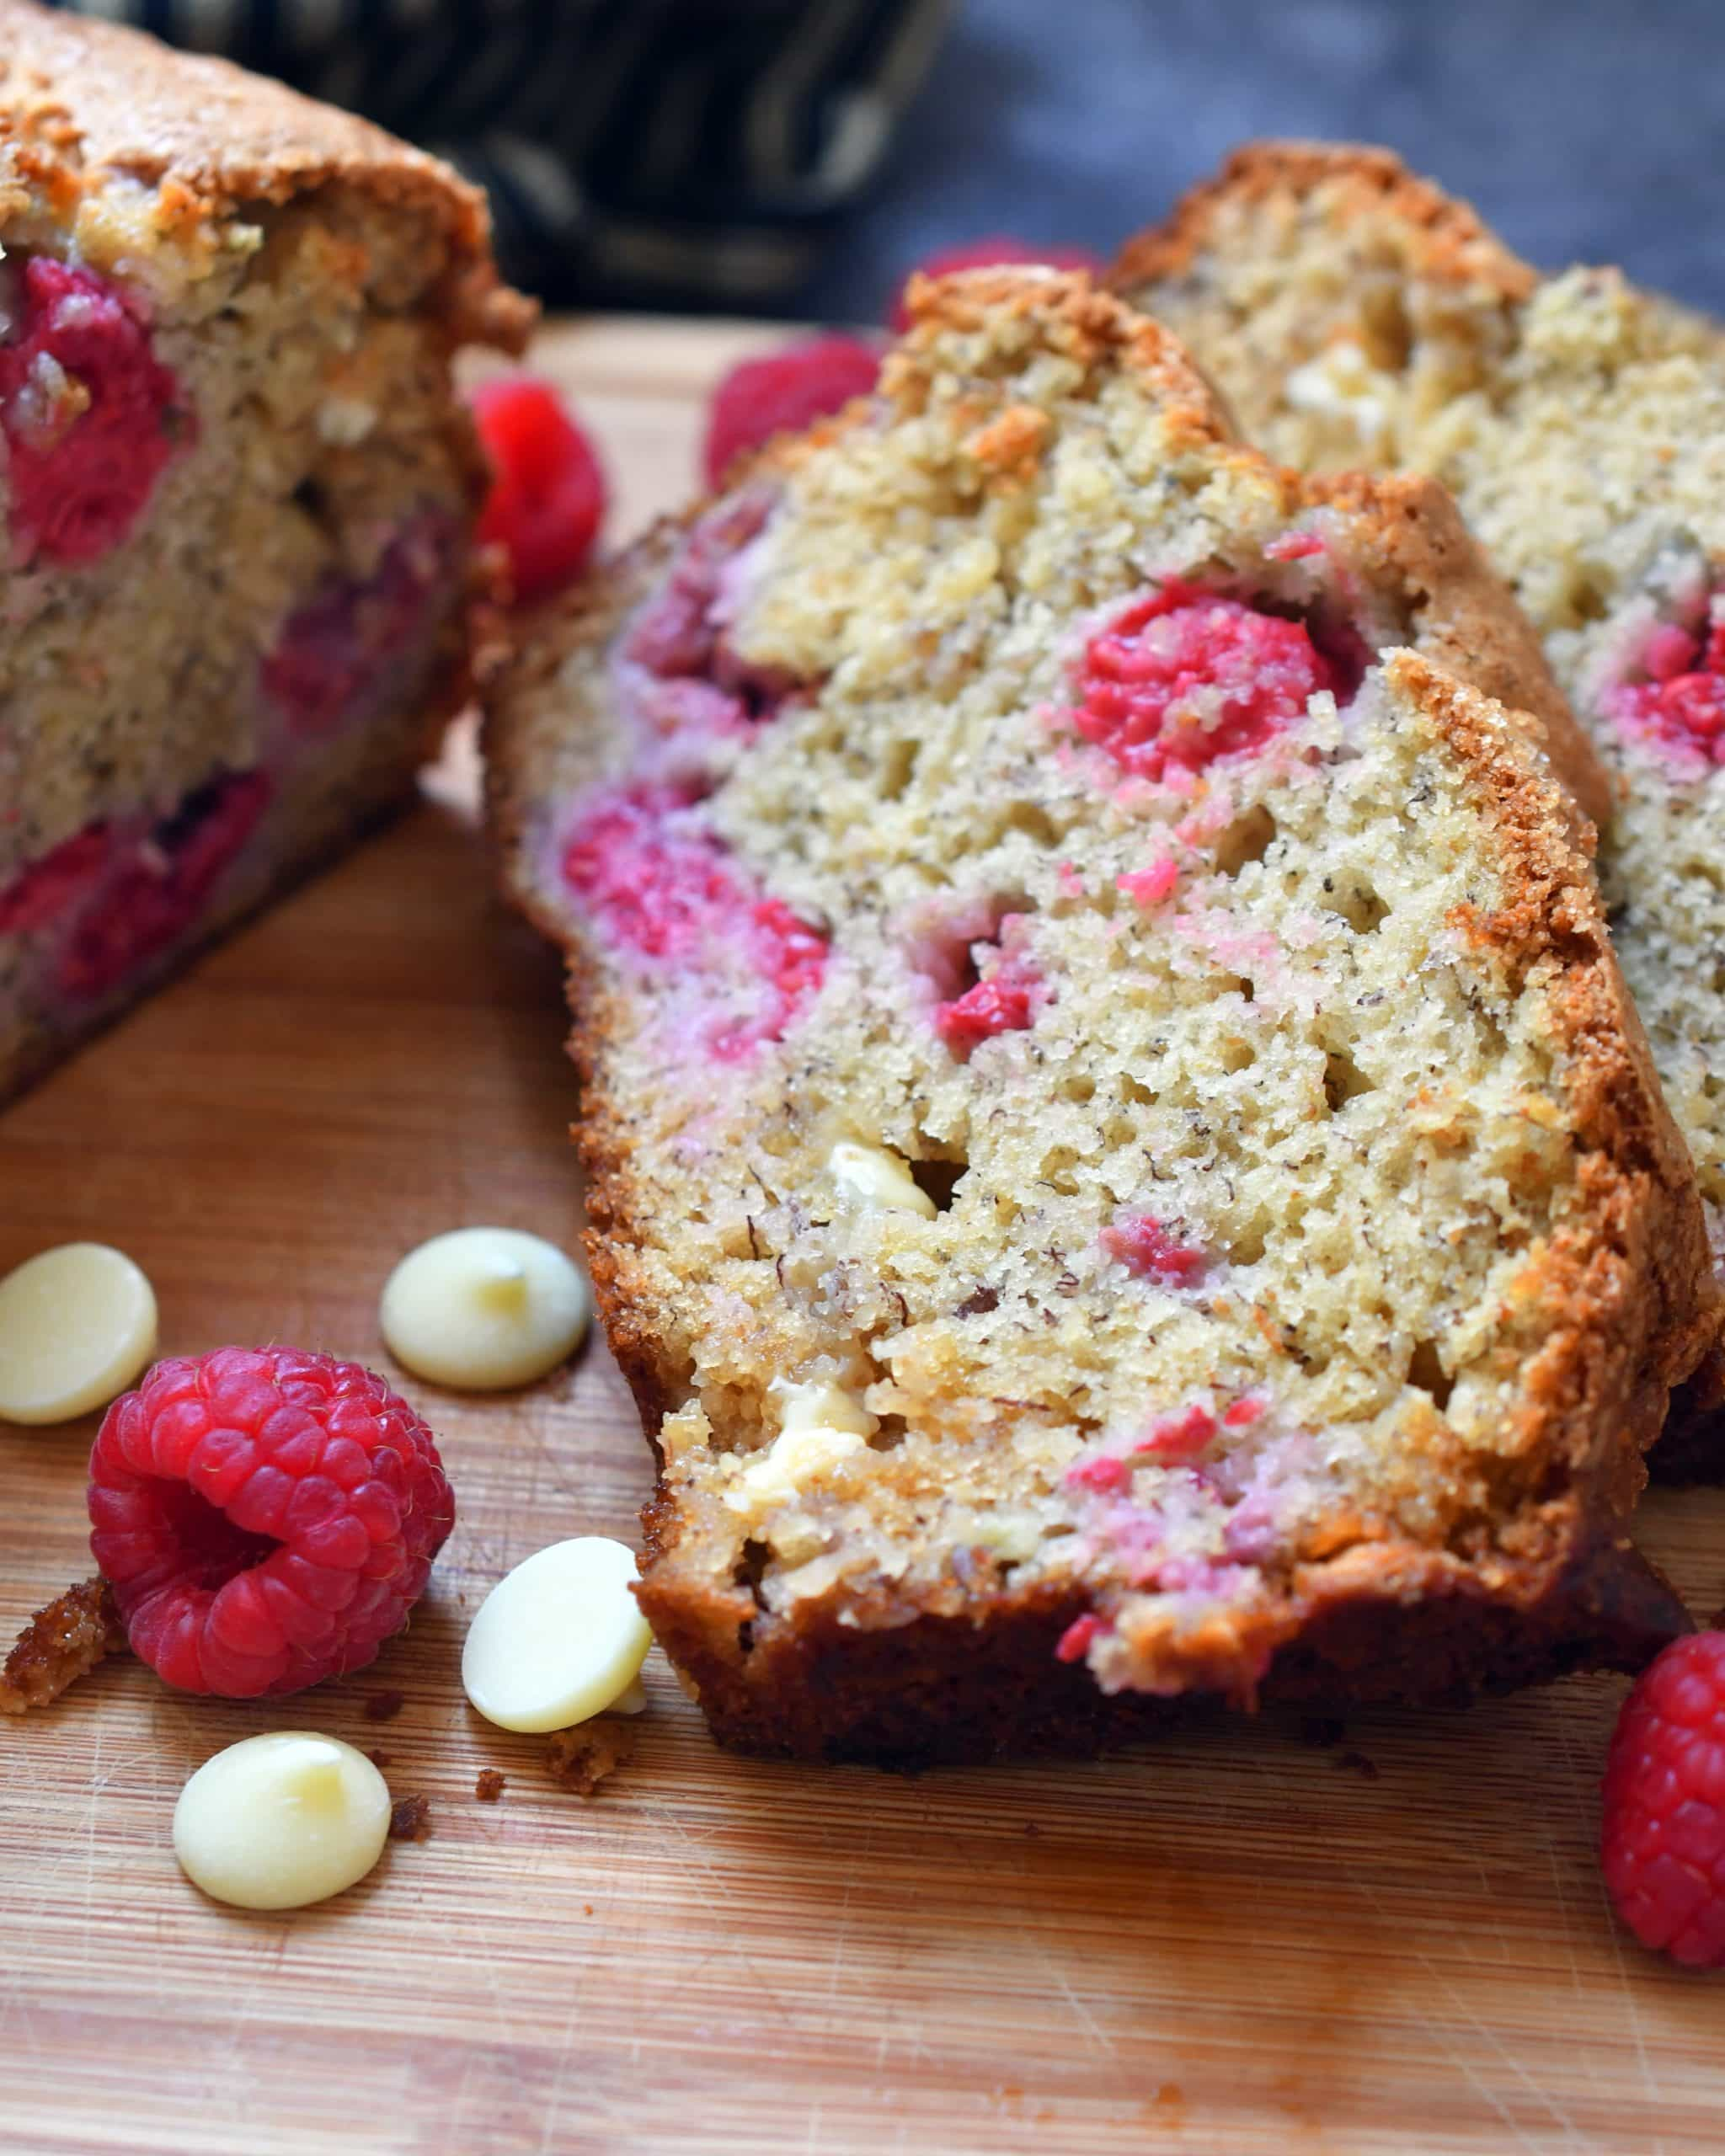 Flavor bursts of raspberries and white chocolate chips laced together in a moist bakery fresh banana bread.